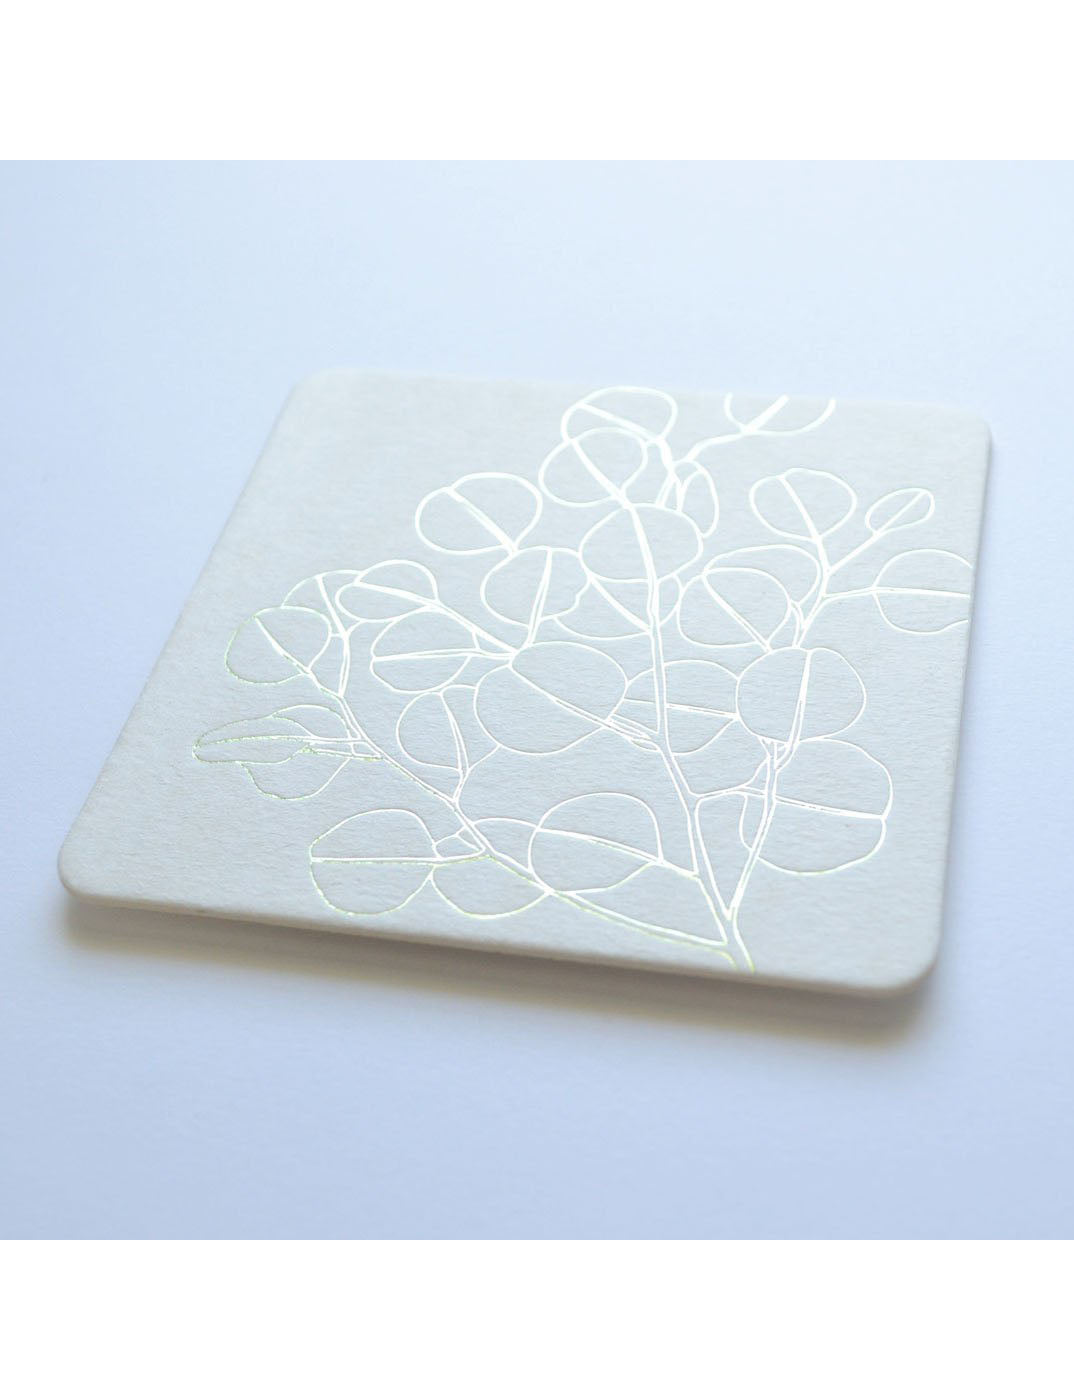 Silver Dollar Kiss the Paper Coasters